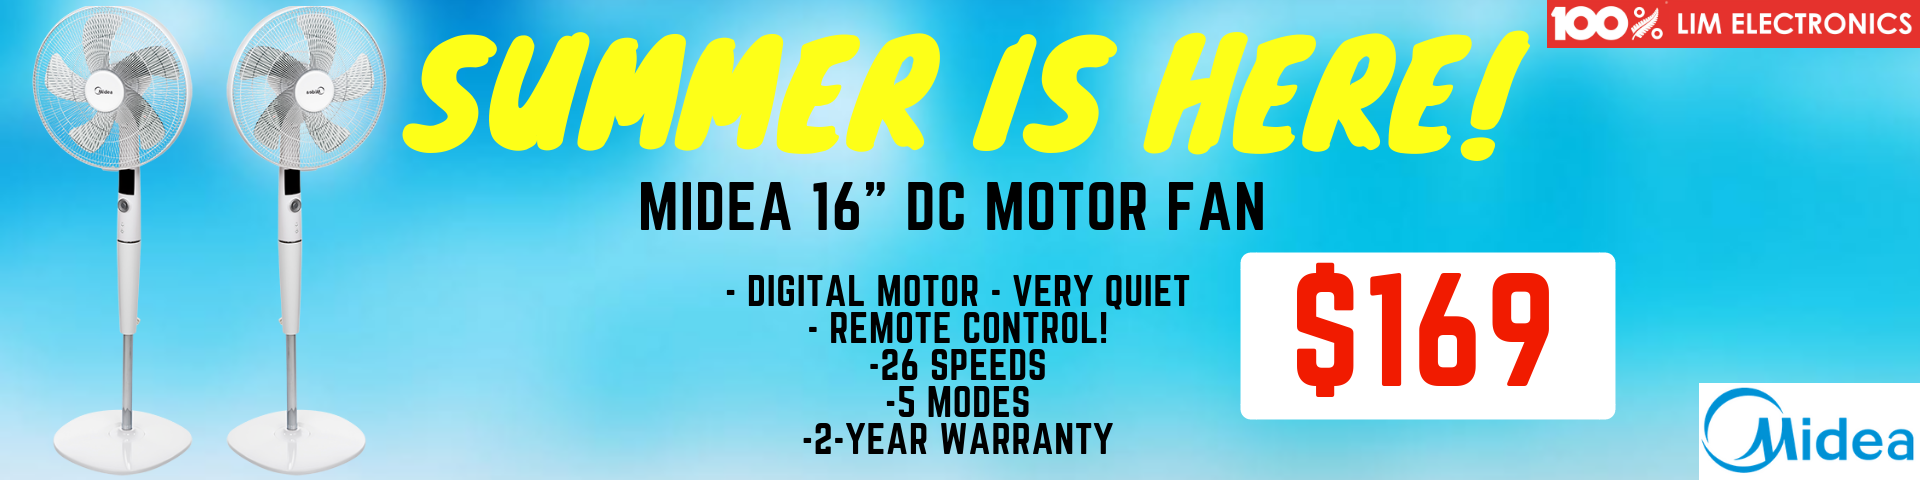 catalog/Promo Slider 3/Aircon Summer.png